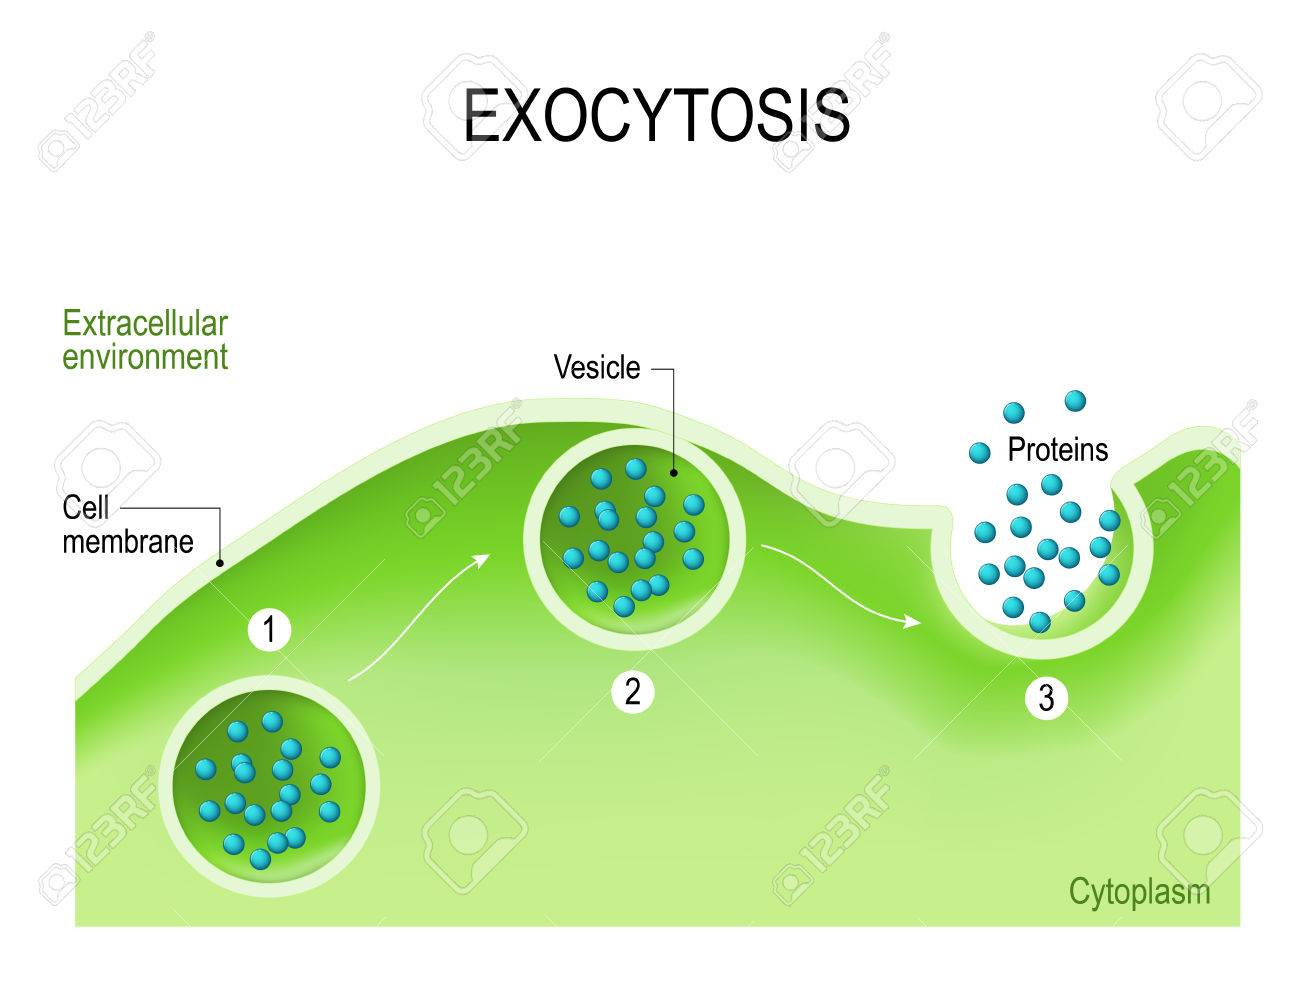 Exocytosis. Cell transports molecules out of the cell. vesicles are carried to the cell membrane, fuses with membrane, contents are secreted into the extracellular environment. - 77744419